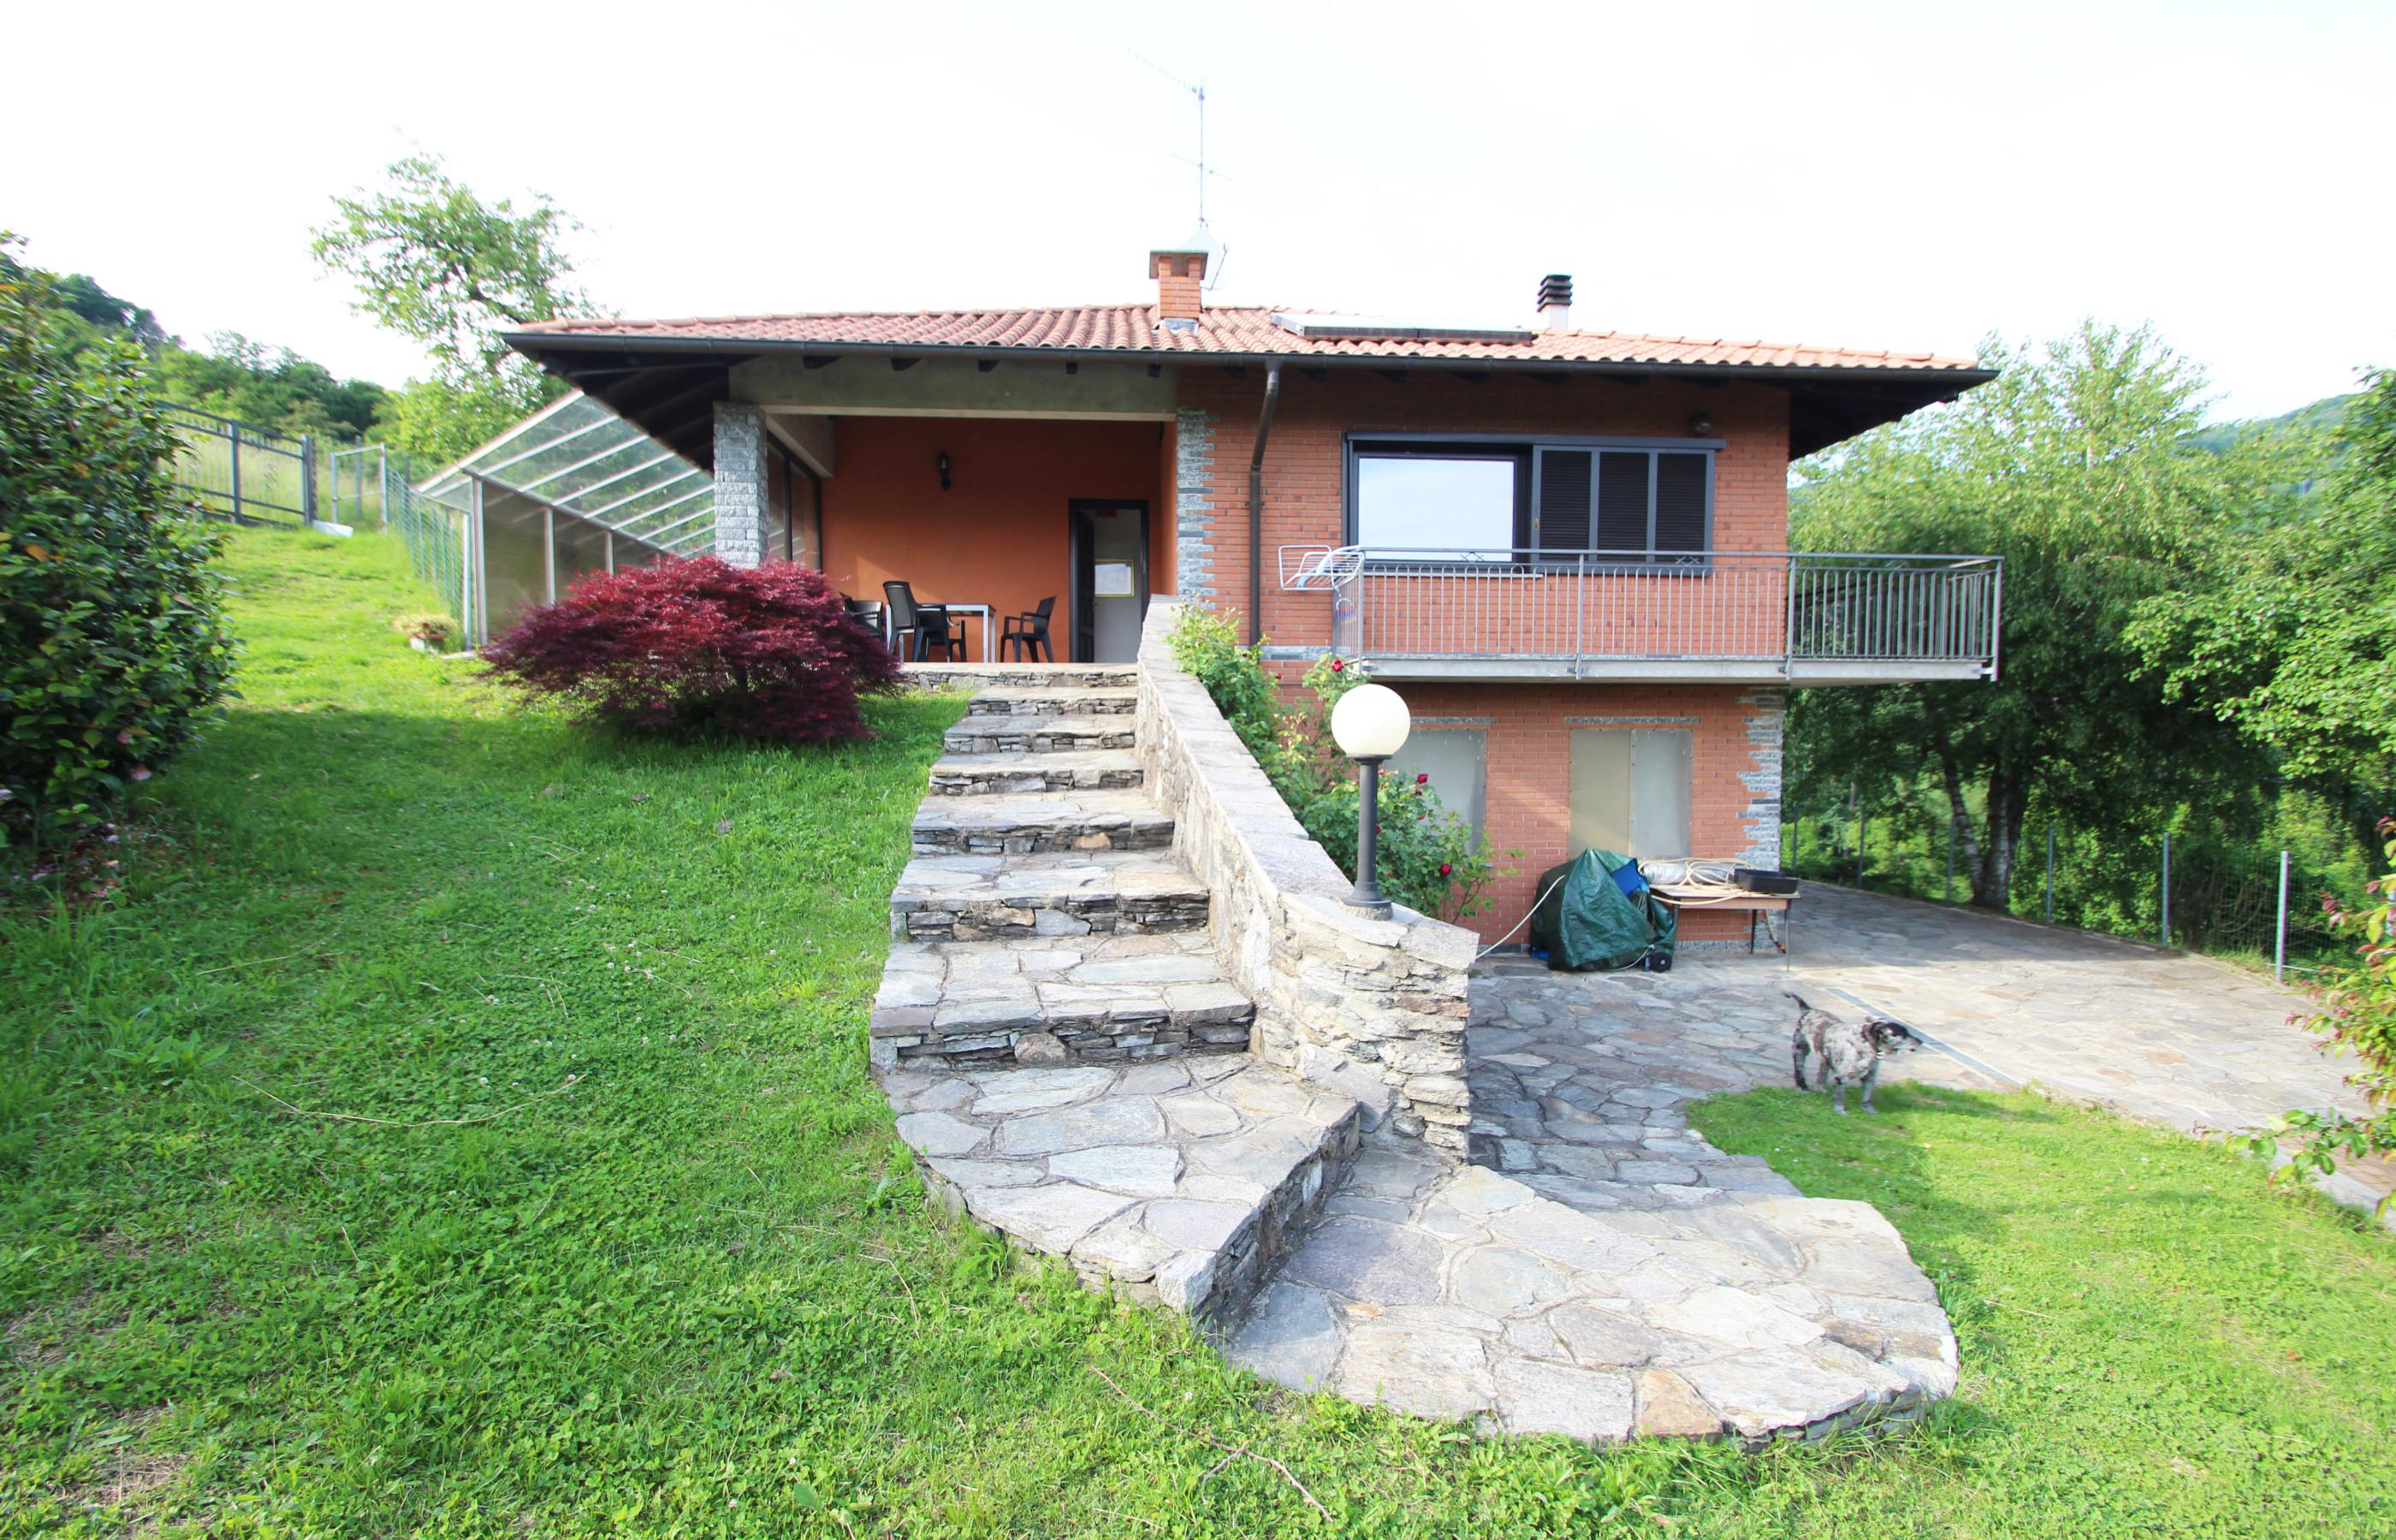 PRATOLUNGO Detached house with a large plot